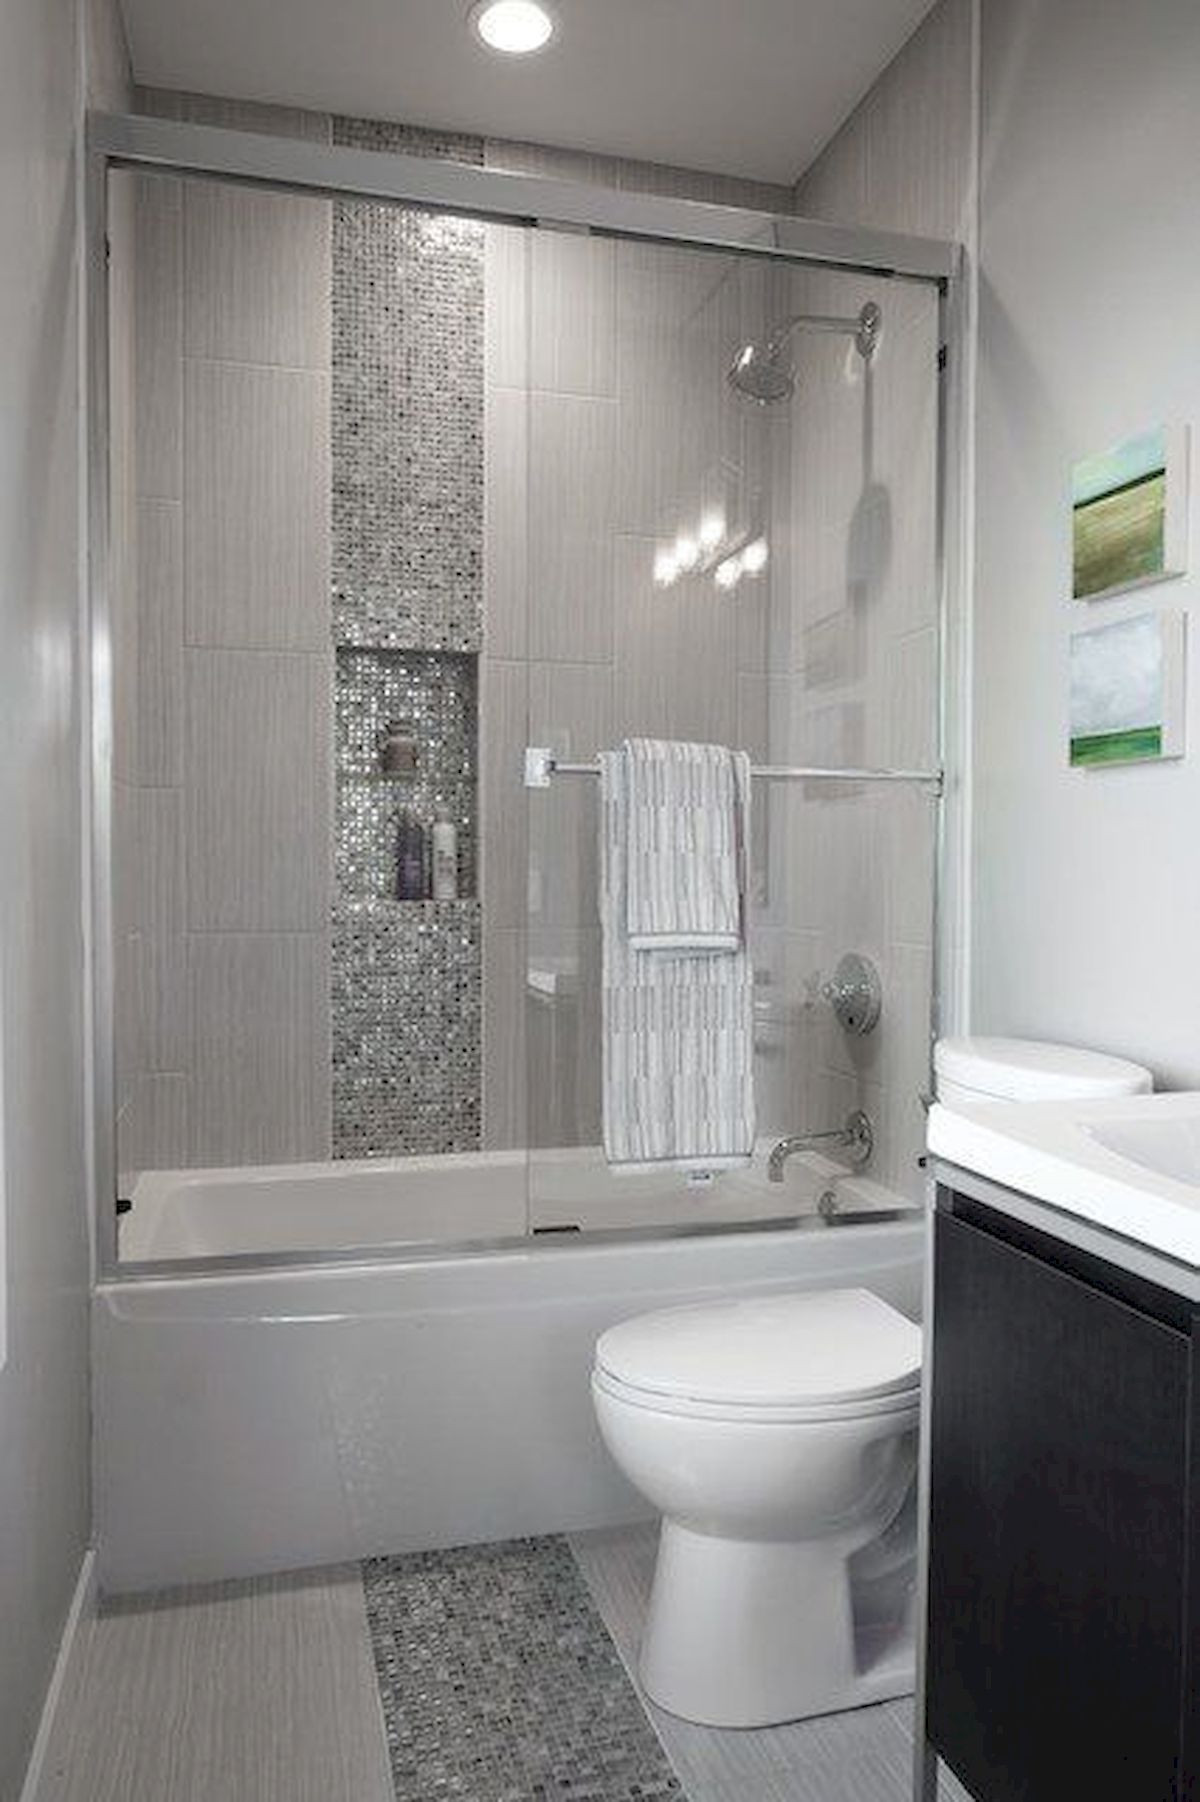 Best ideas about Bathroom Remodel Ideas 2019 . Save or Pin 60 Elegant Small Master Bathroom Remodel Ideas 20 in 2019 Now.